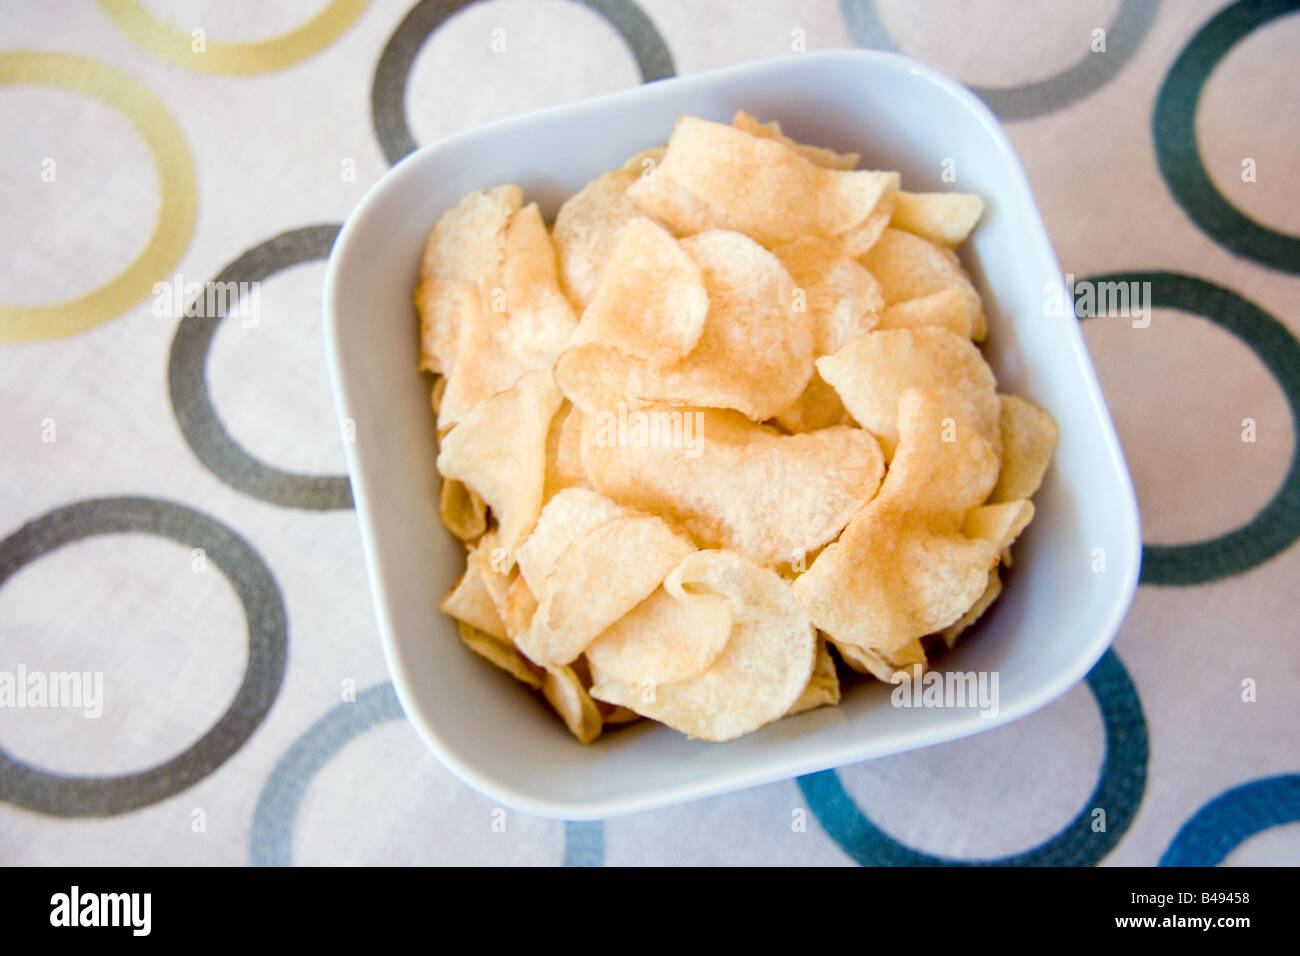 A bowl of potato chips - Stock Image